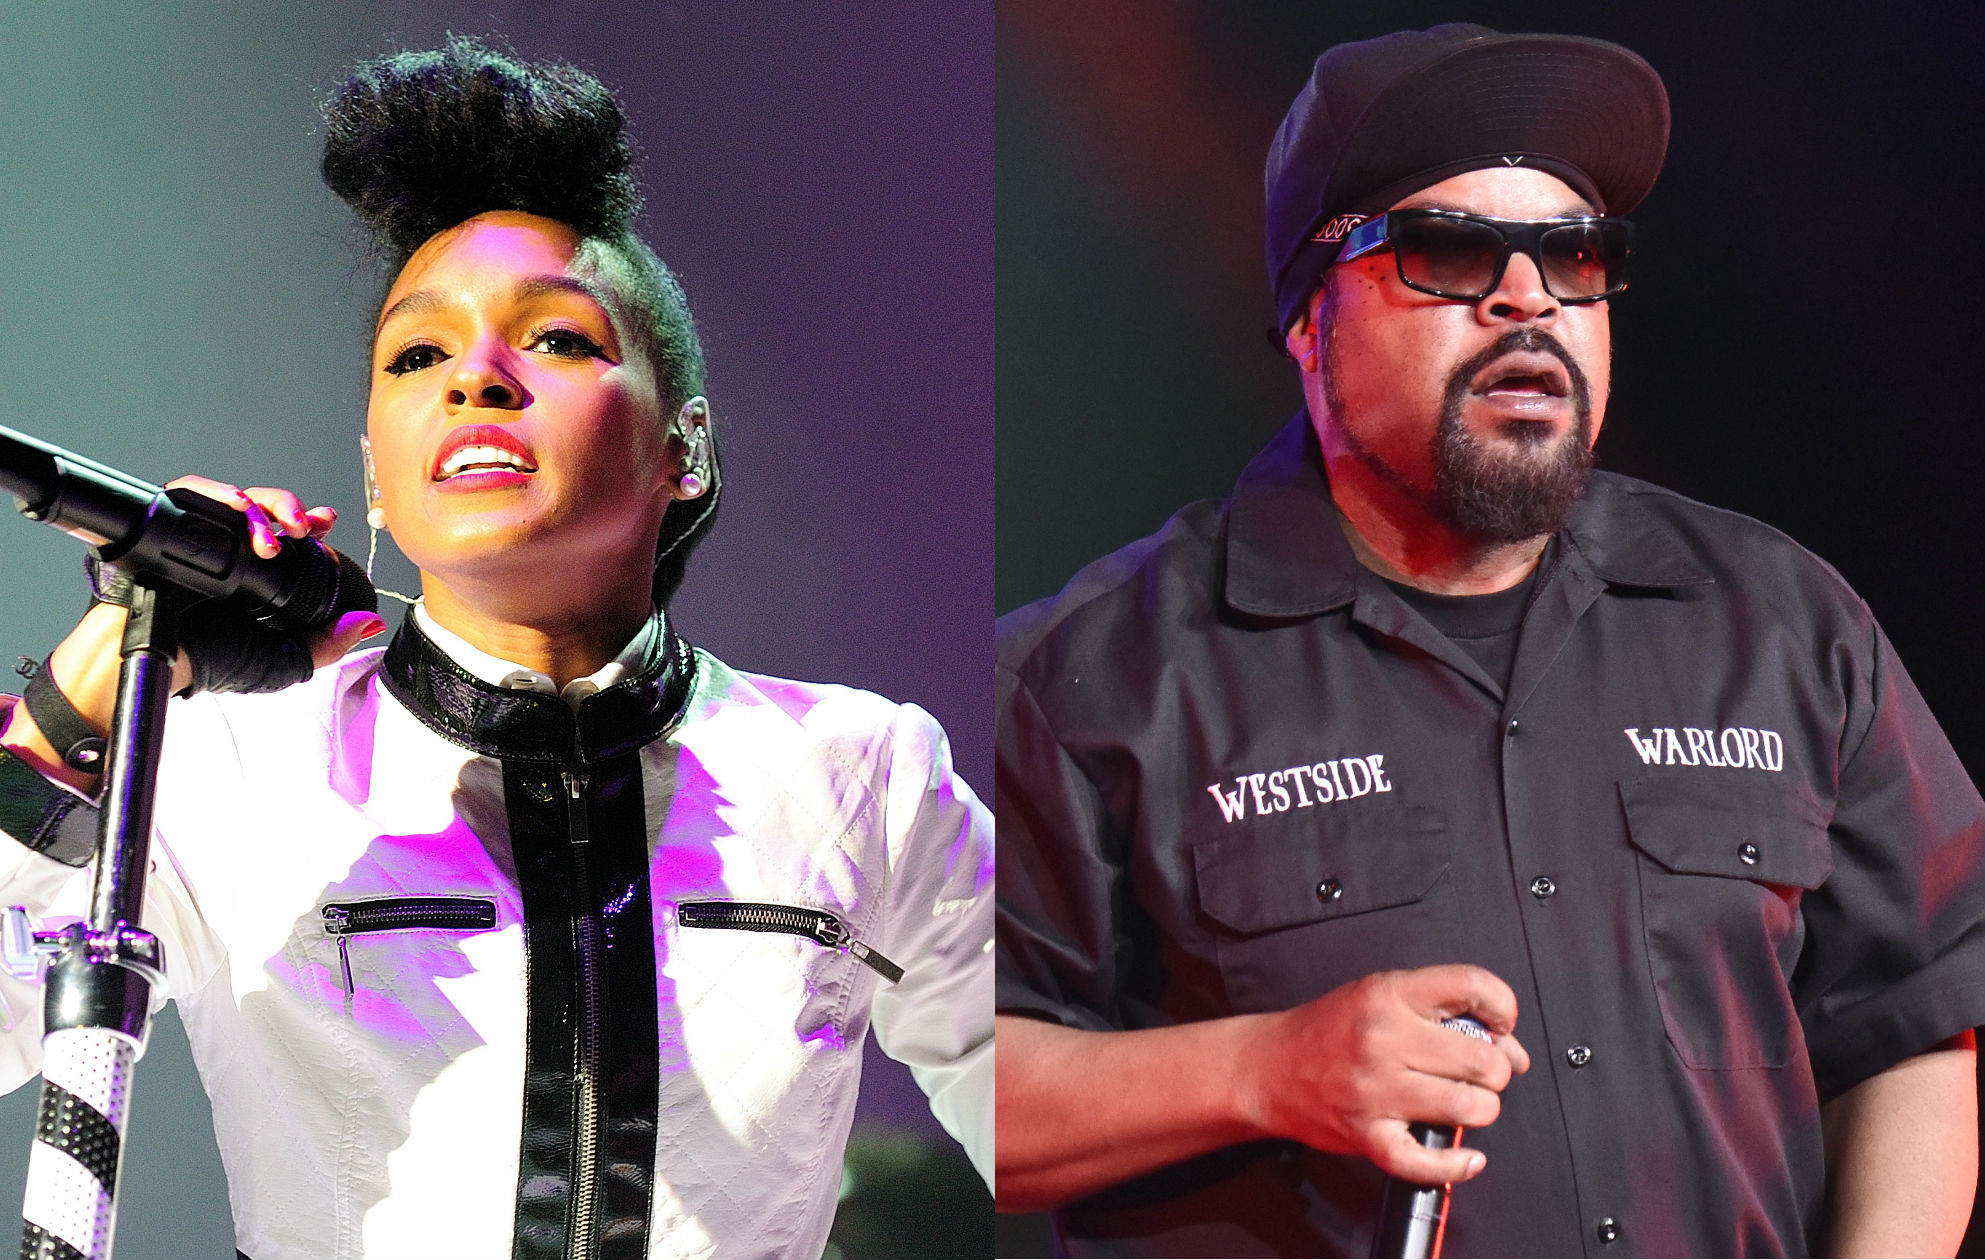 """Janelle Monáe and Ice Cube join calls for justice following death of George Floyd: """"We need action, now"""" - EpicNews"""